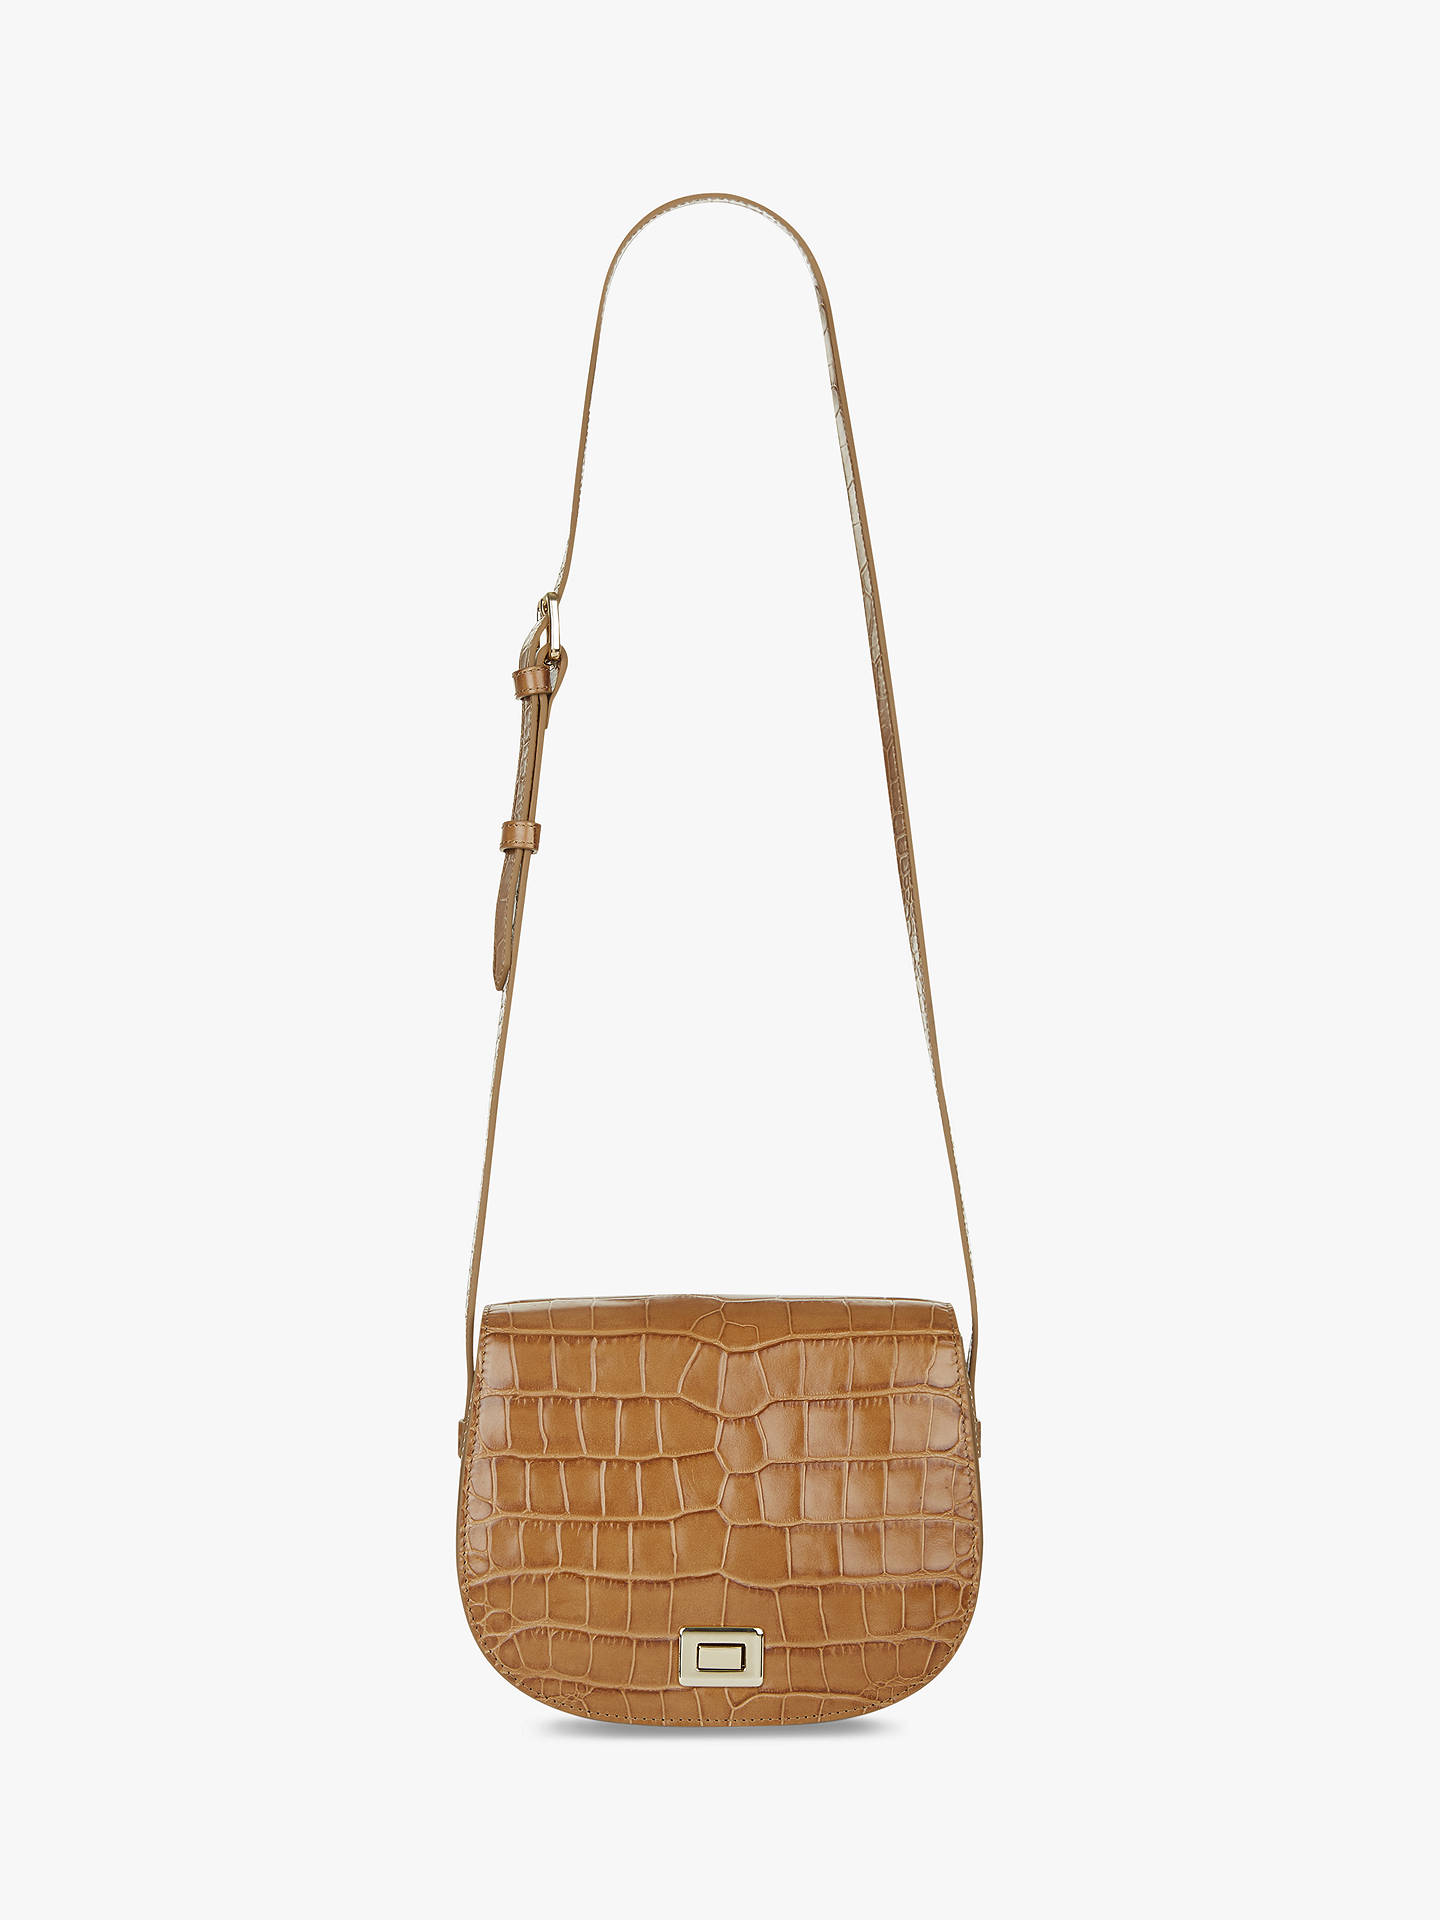 Hobbs Oxford Leather Saddle Bag, Latte by Hobbs